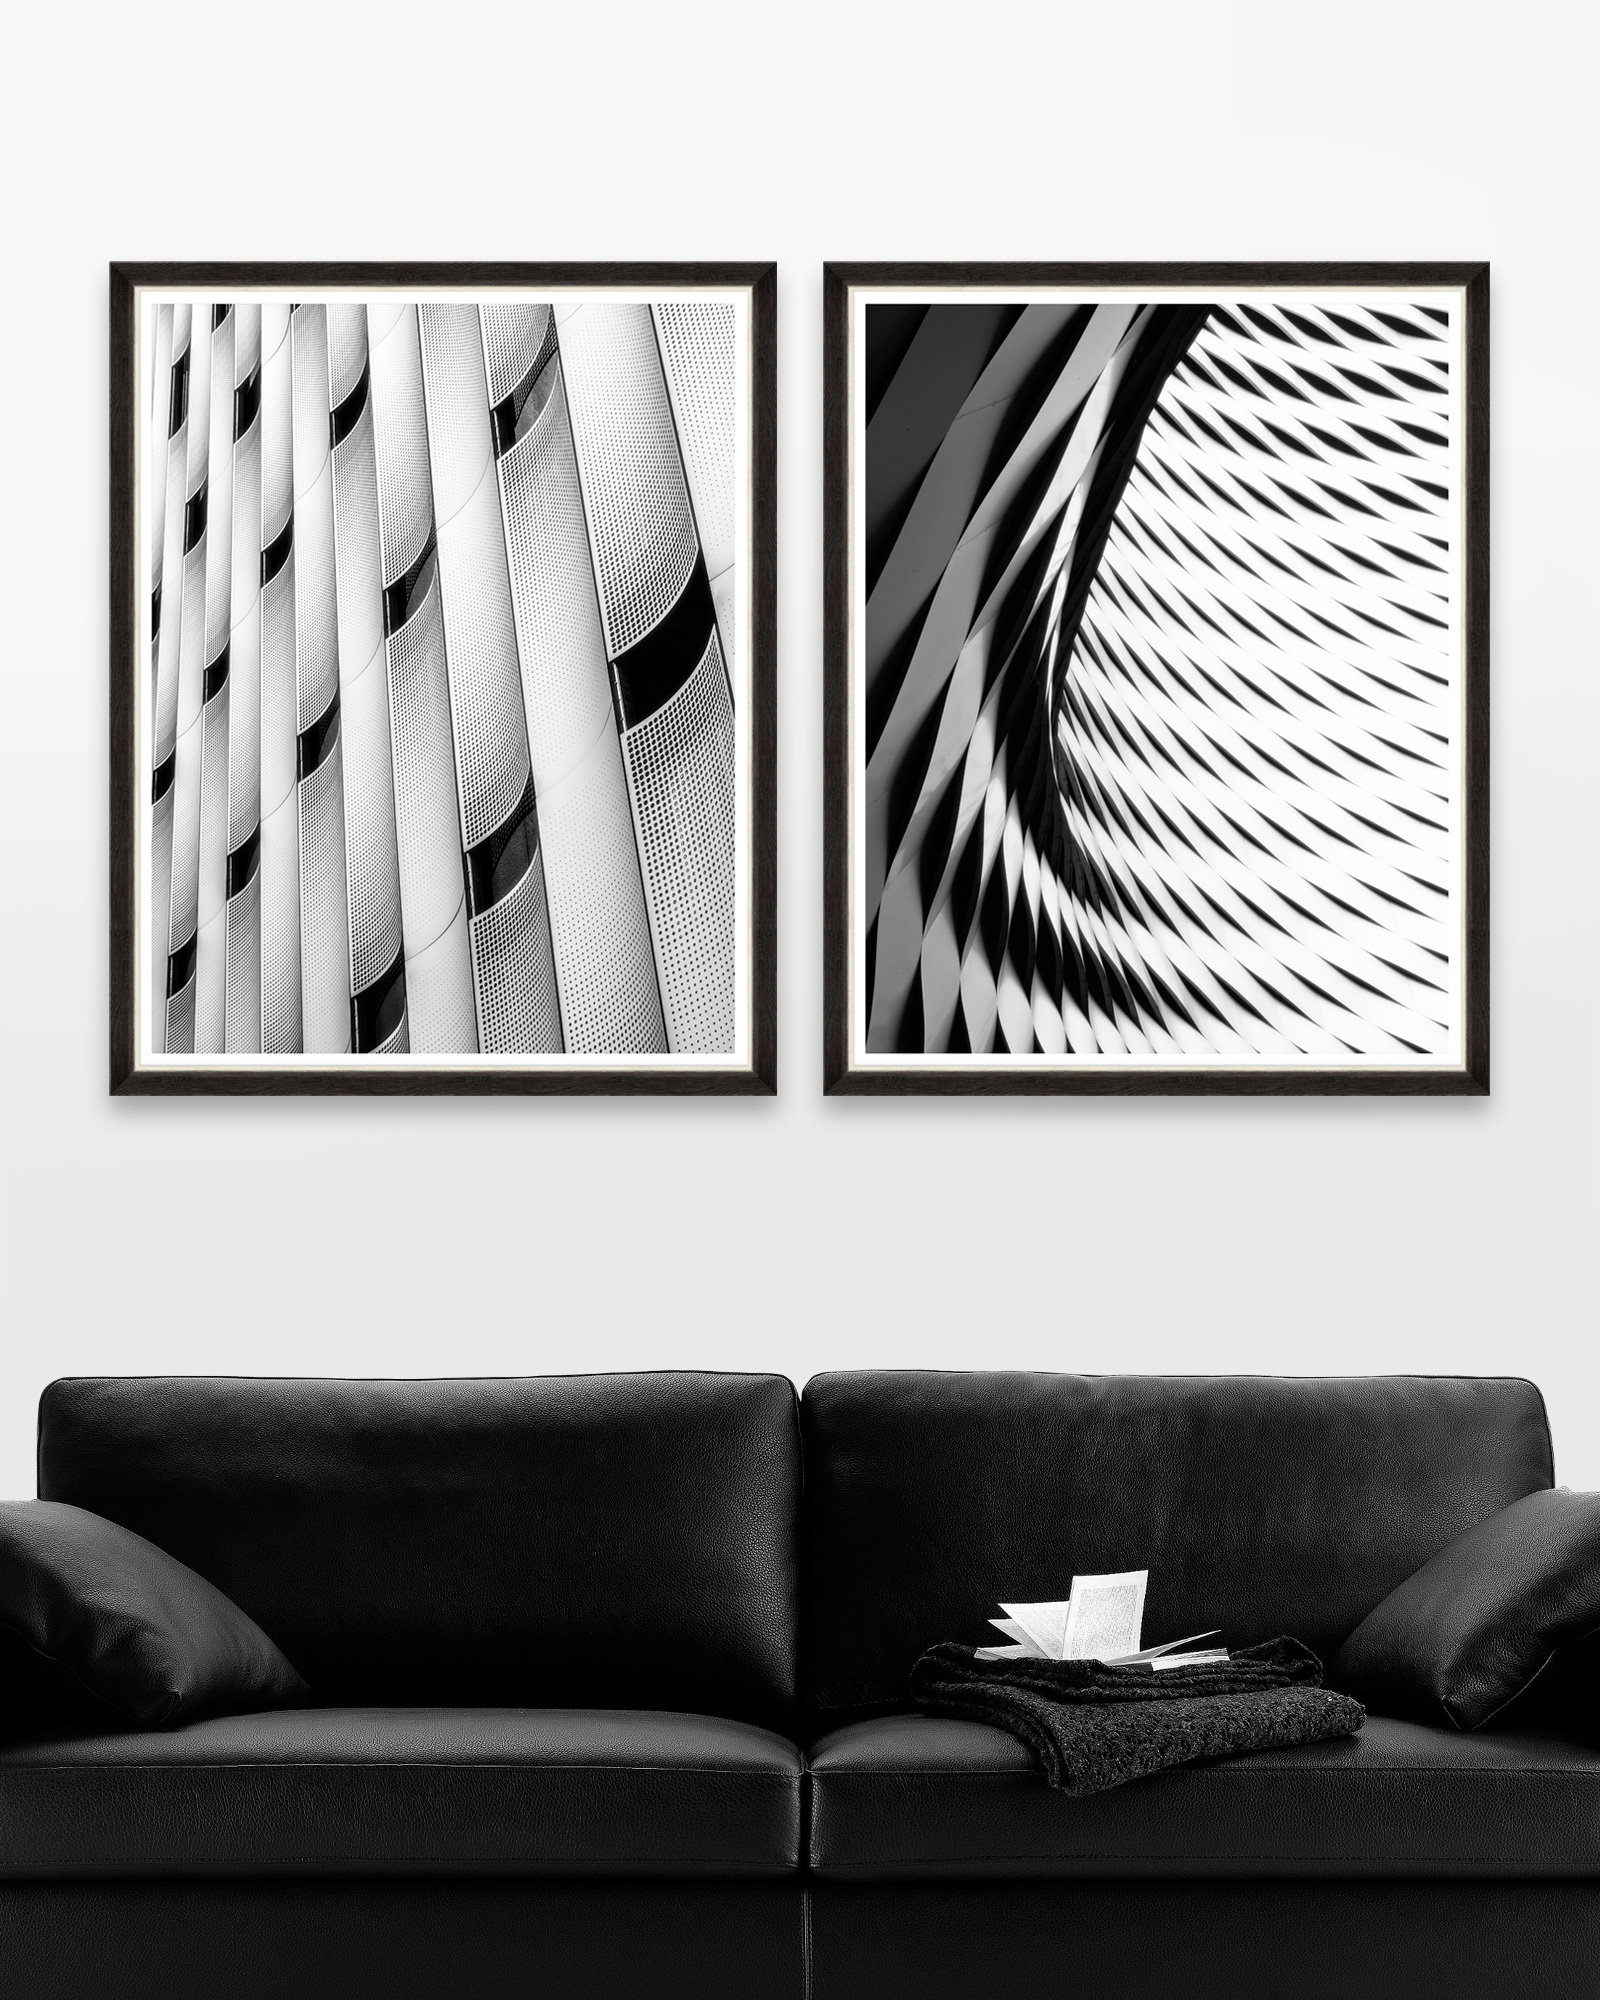 Tablou 2 Piese Framed Art Modern Architecture